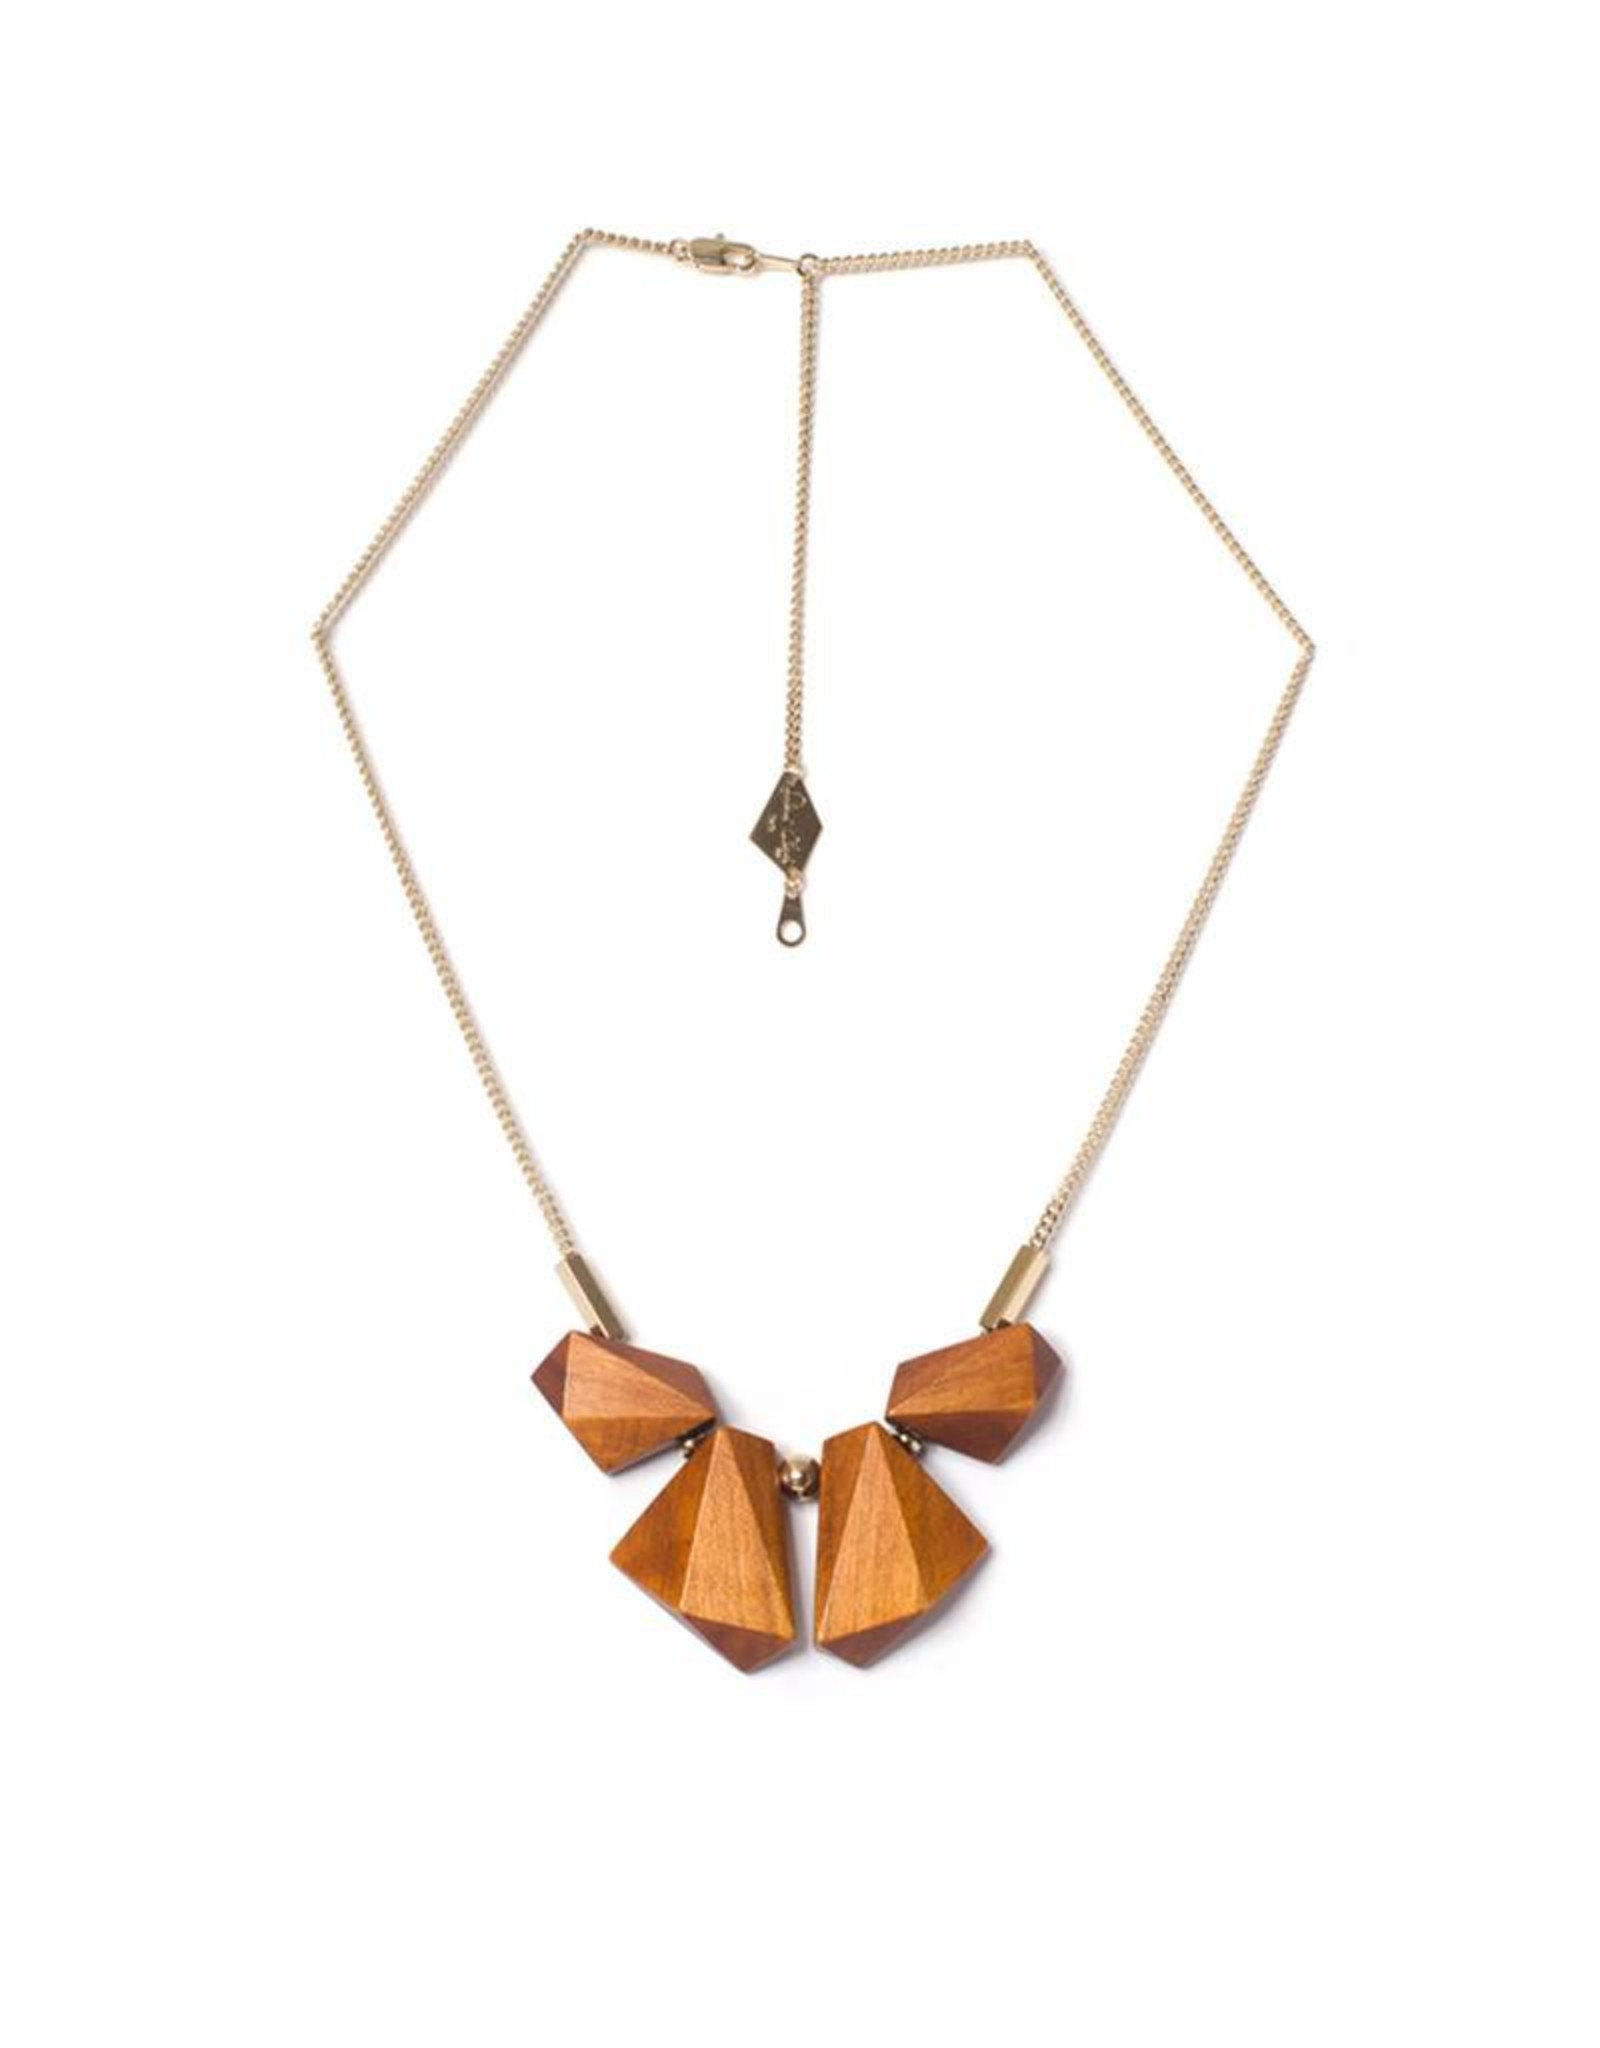 Salomé Charly Verna Necklace